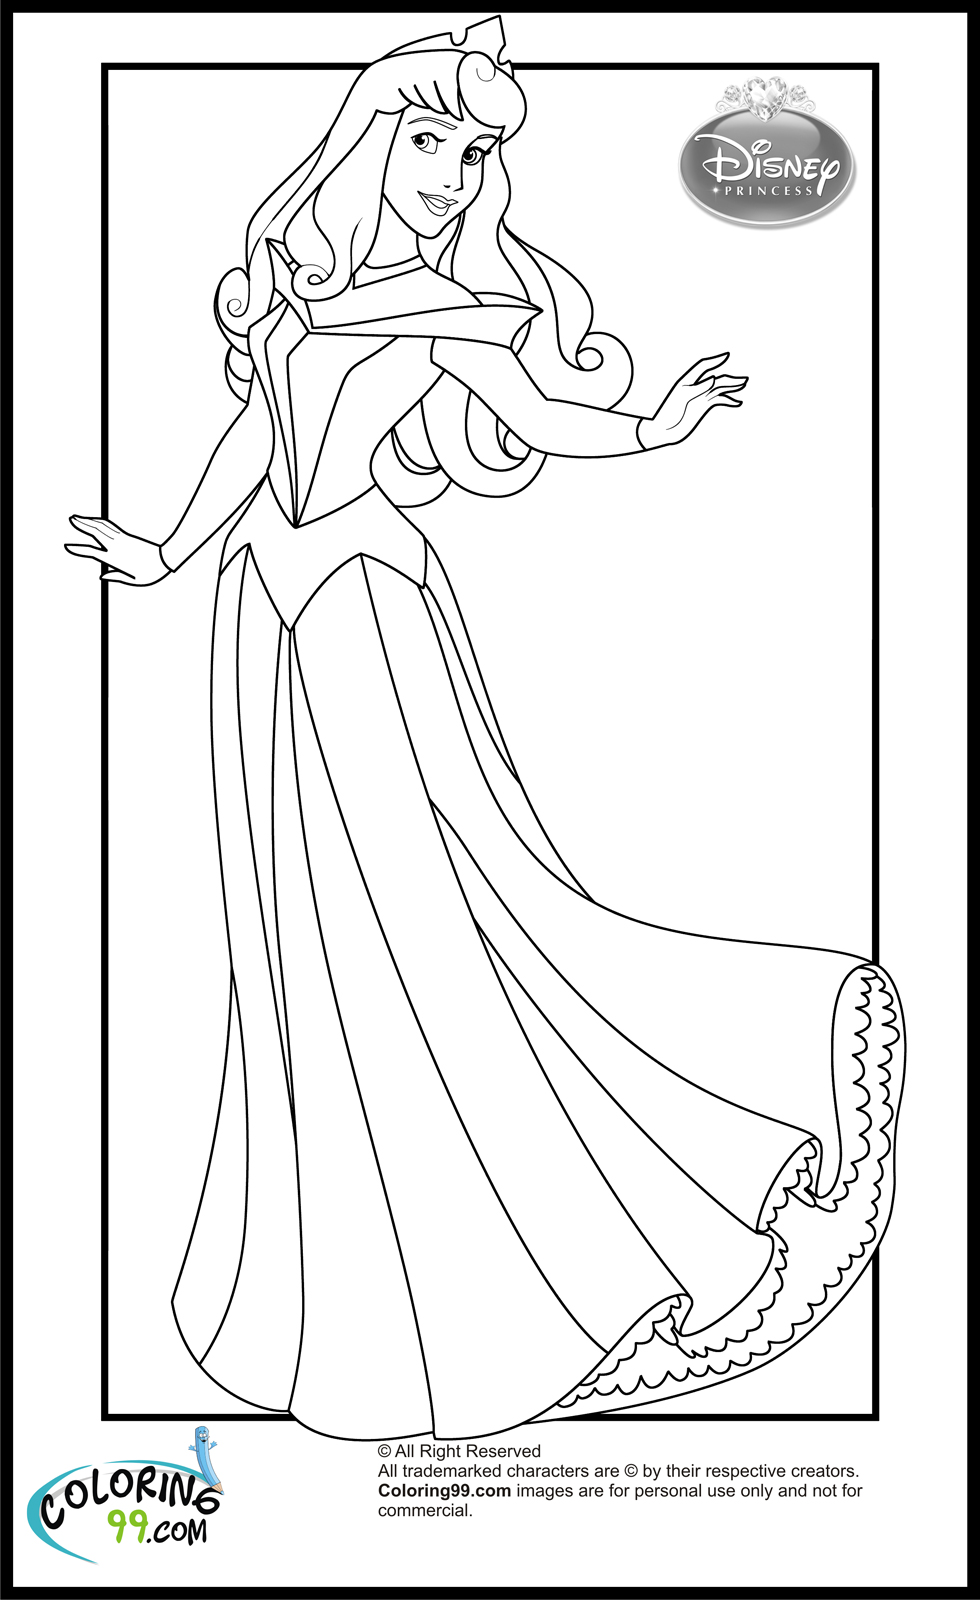 coloring princesses disney princess coloring pages team colors coloring princesses 1 1